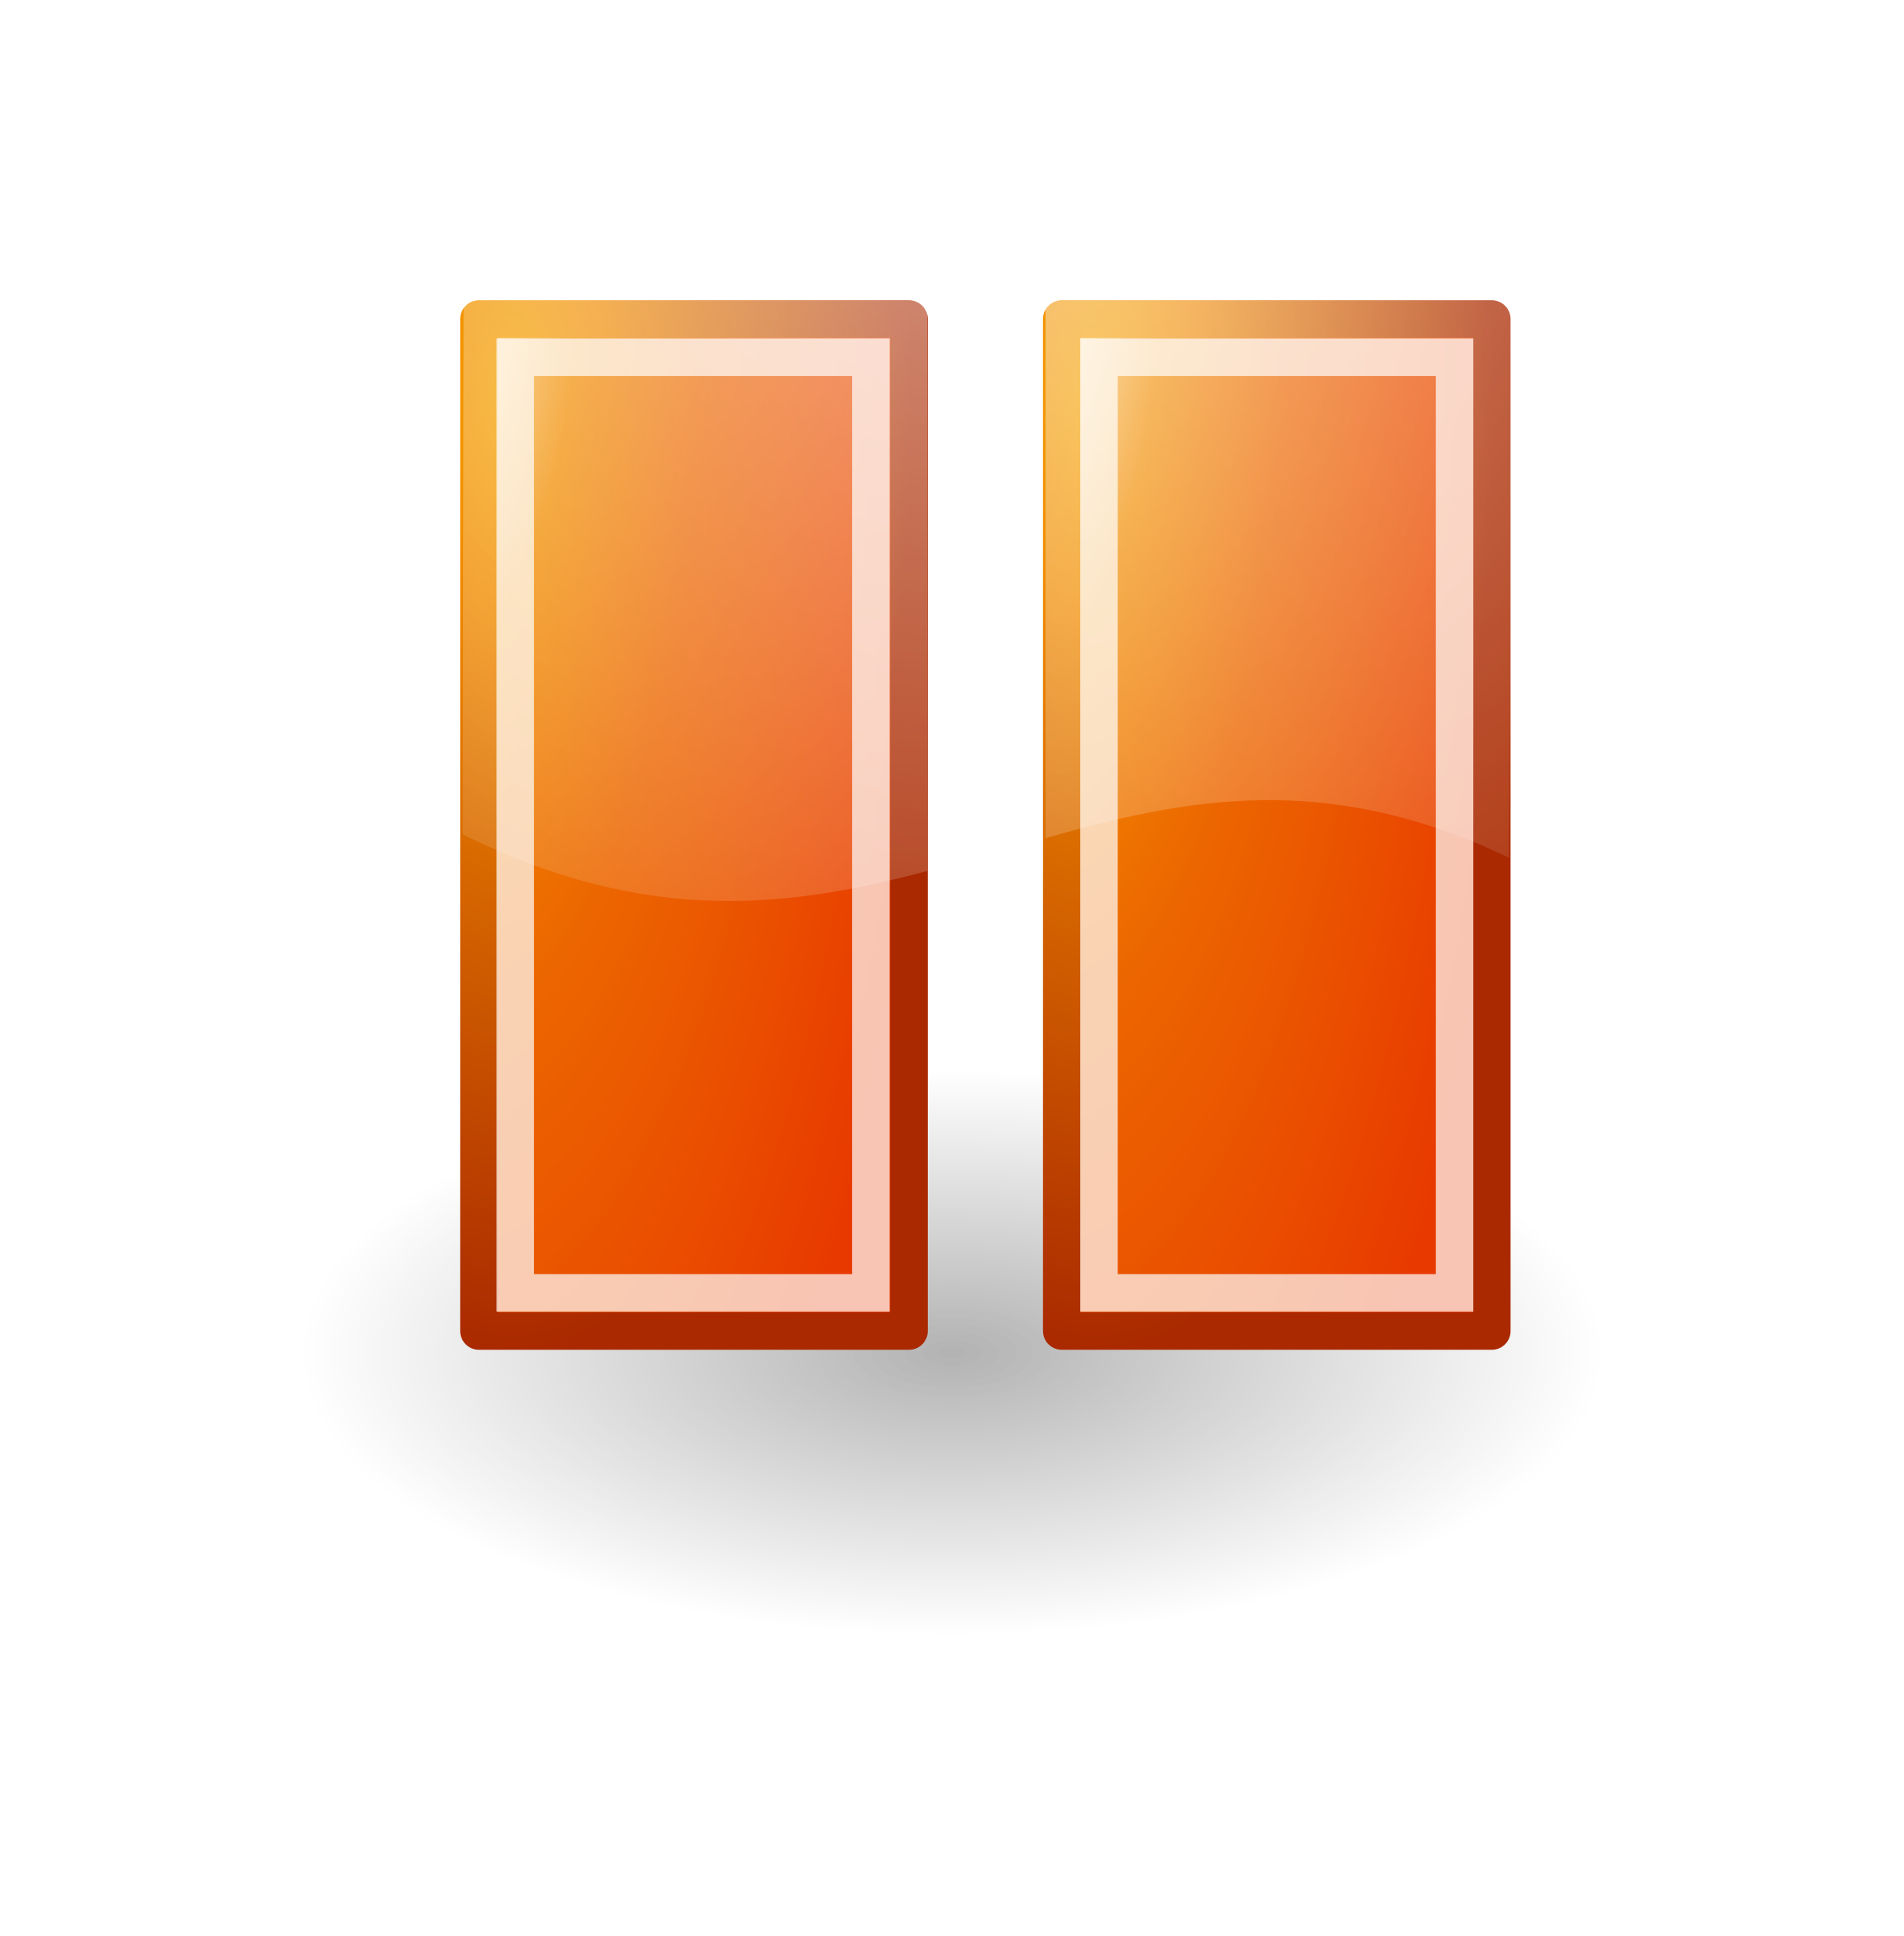 Orange button png. Pause tango style icons